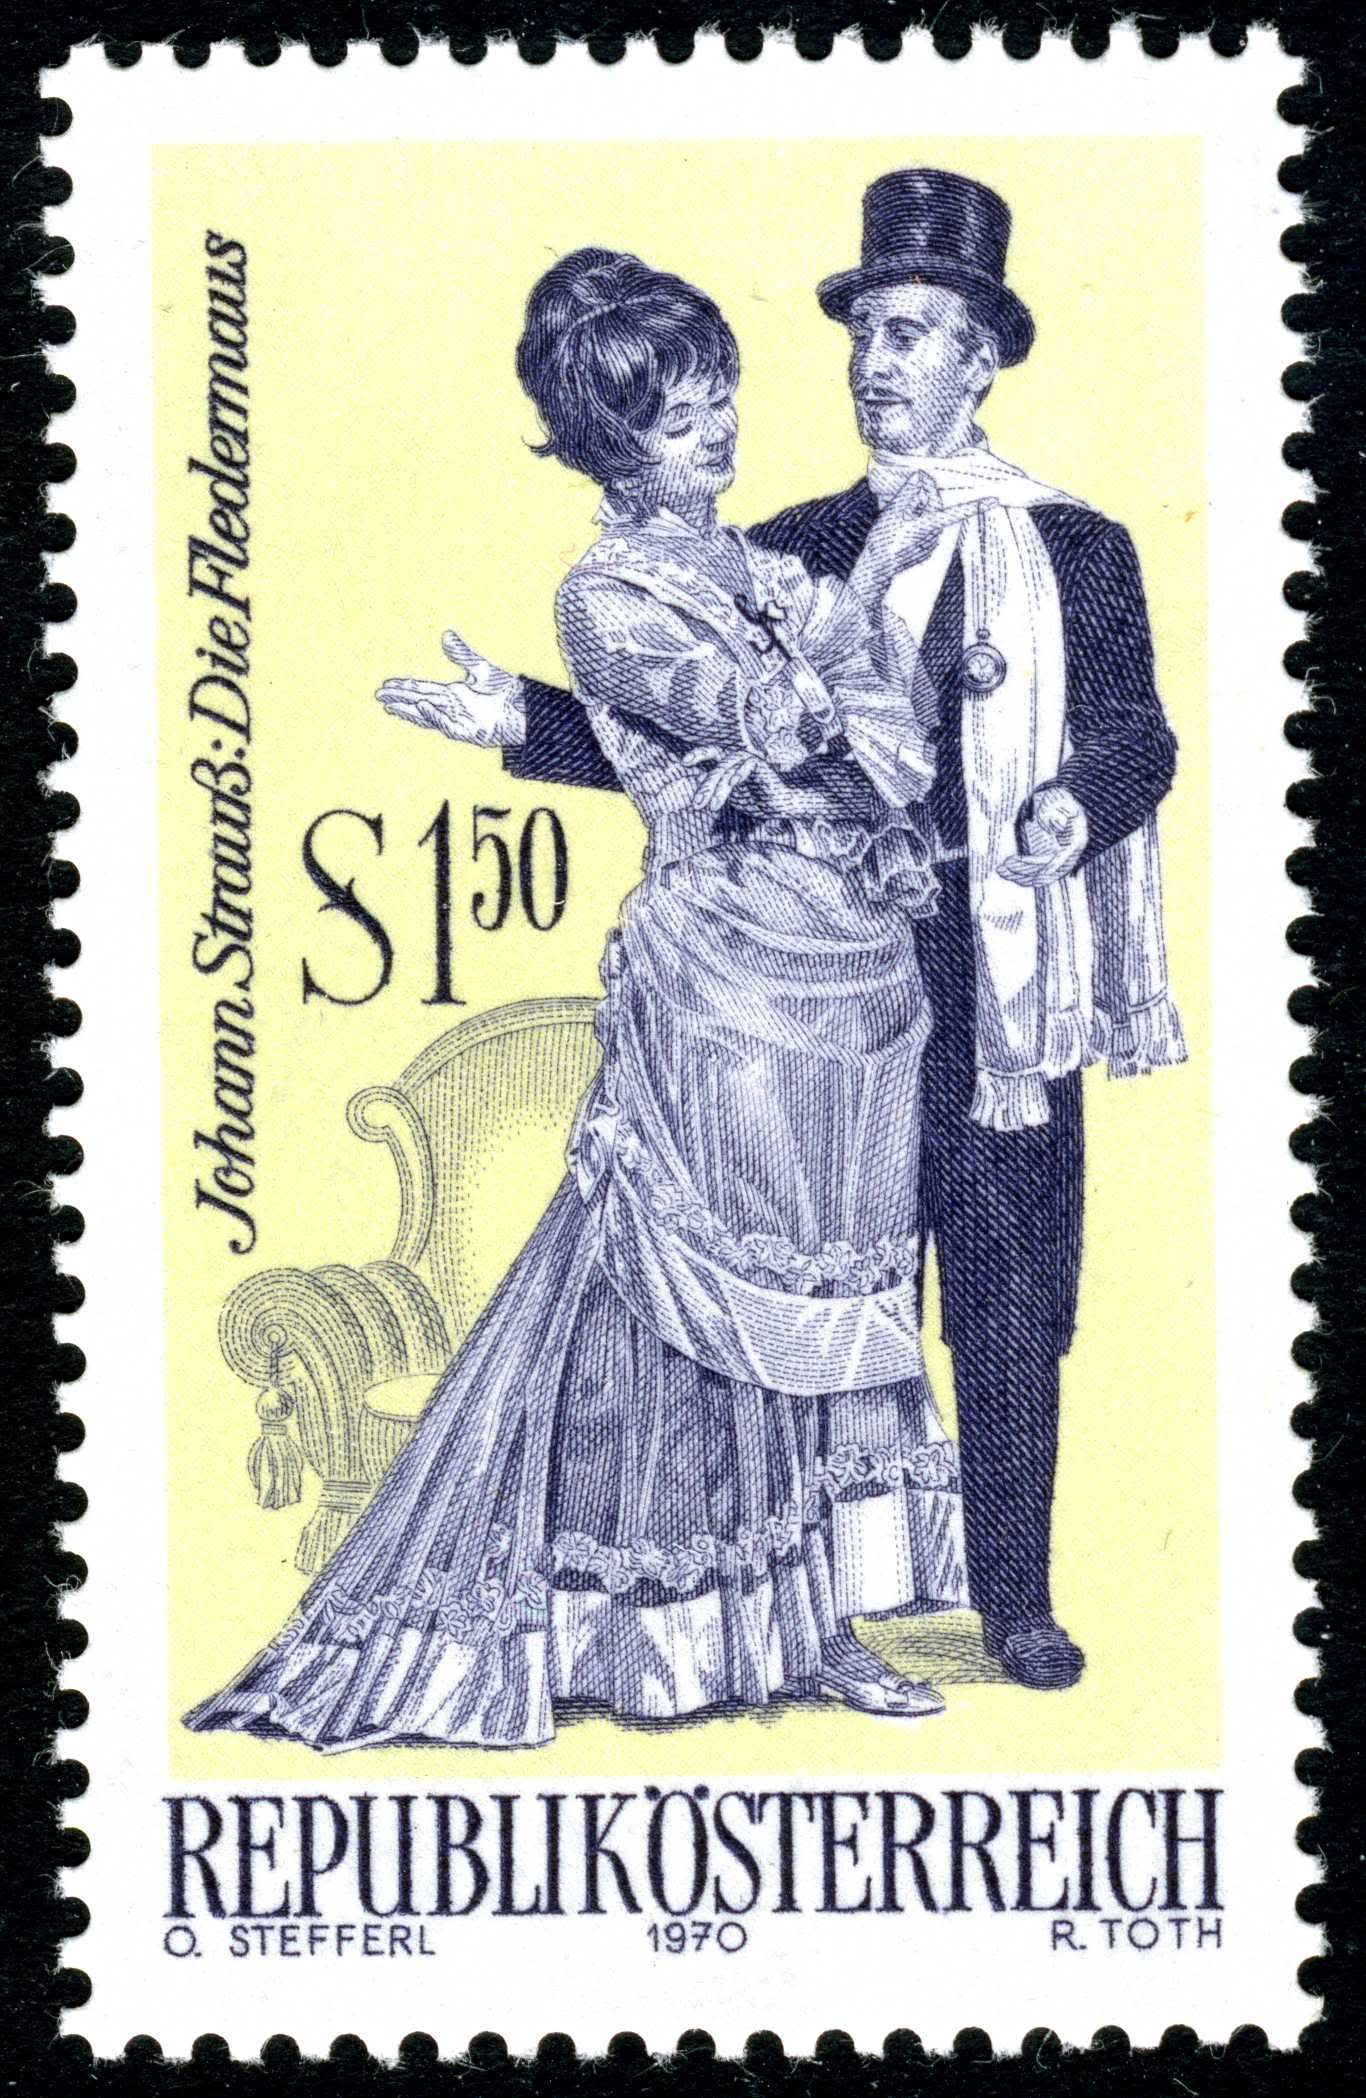 Austria issued 1970 engraved by Toth